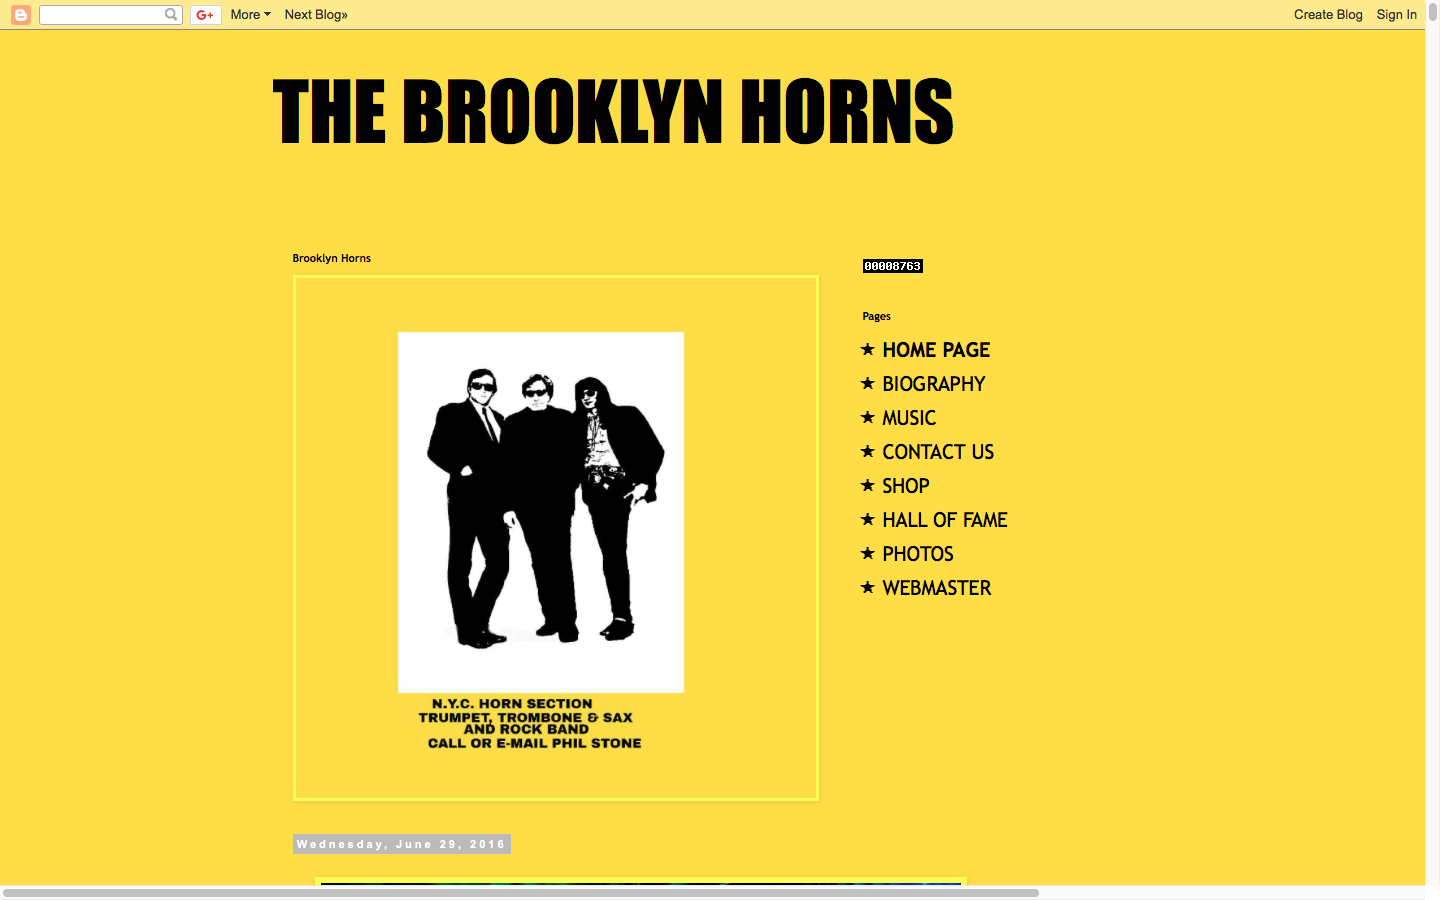 The Brooklyn Horns